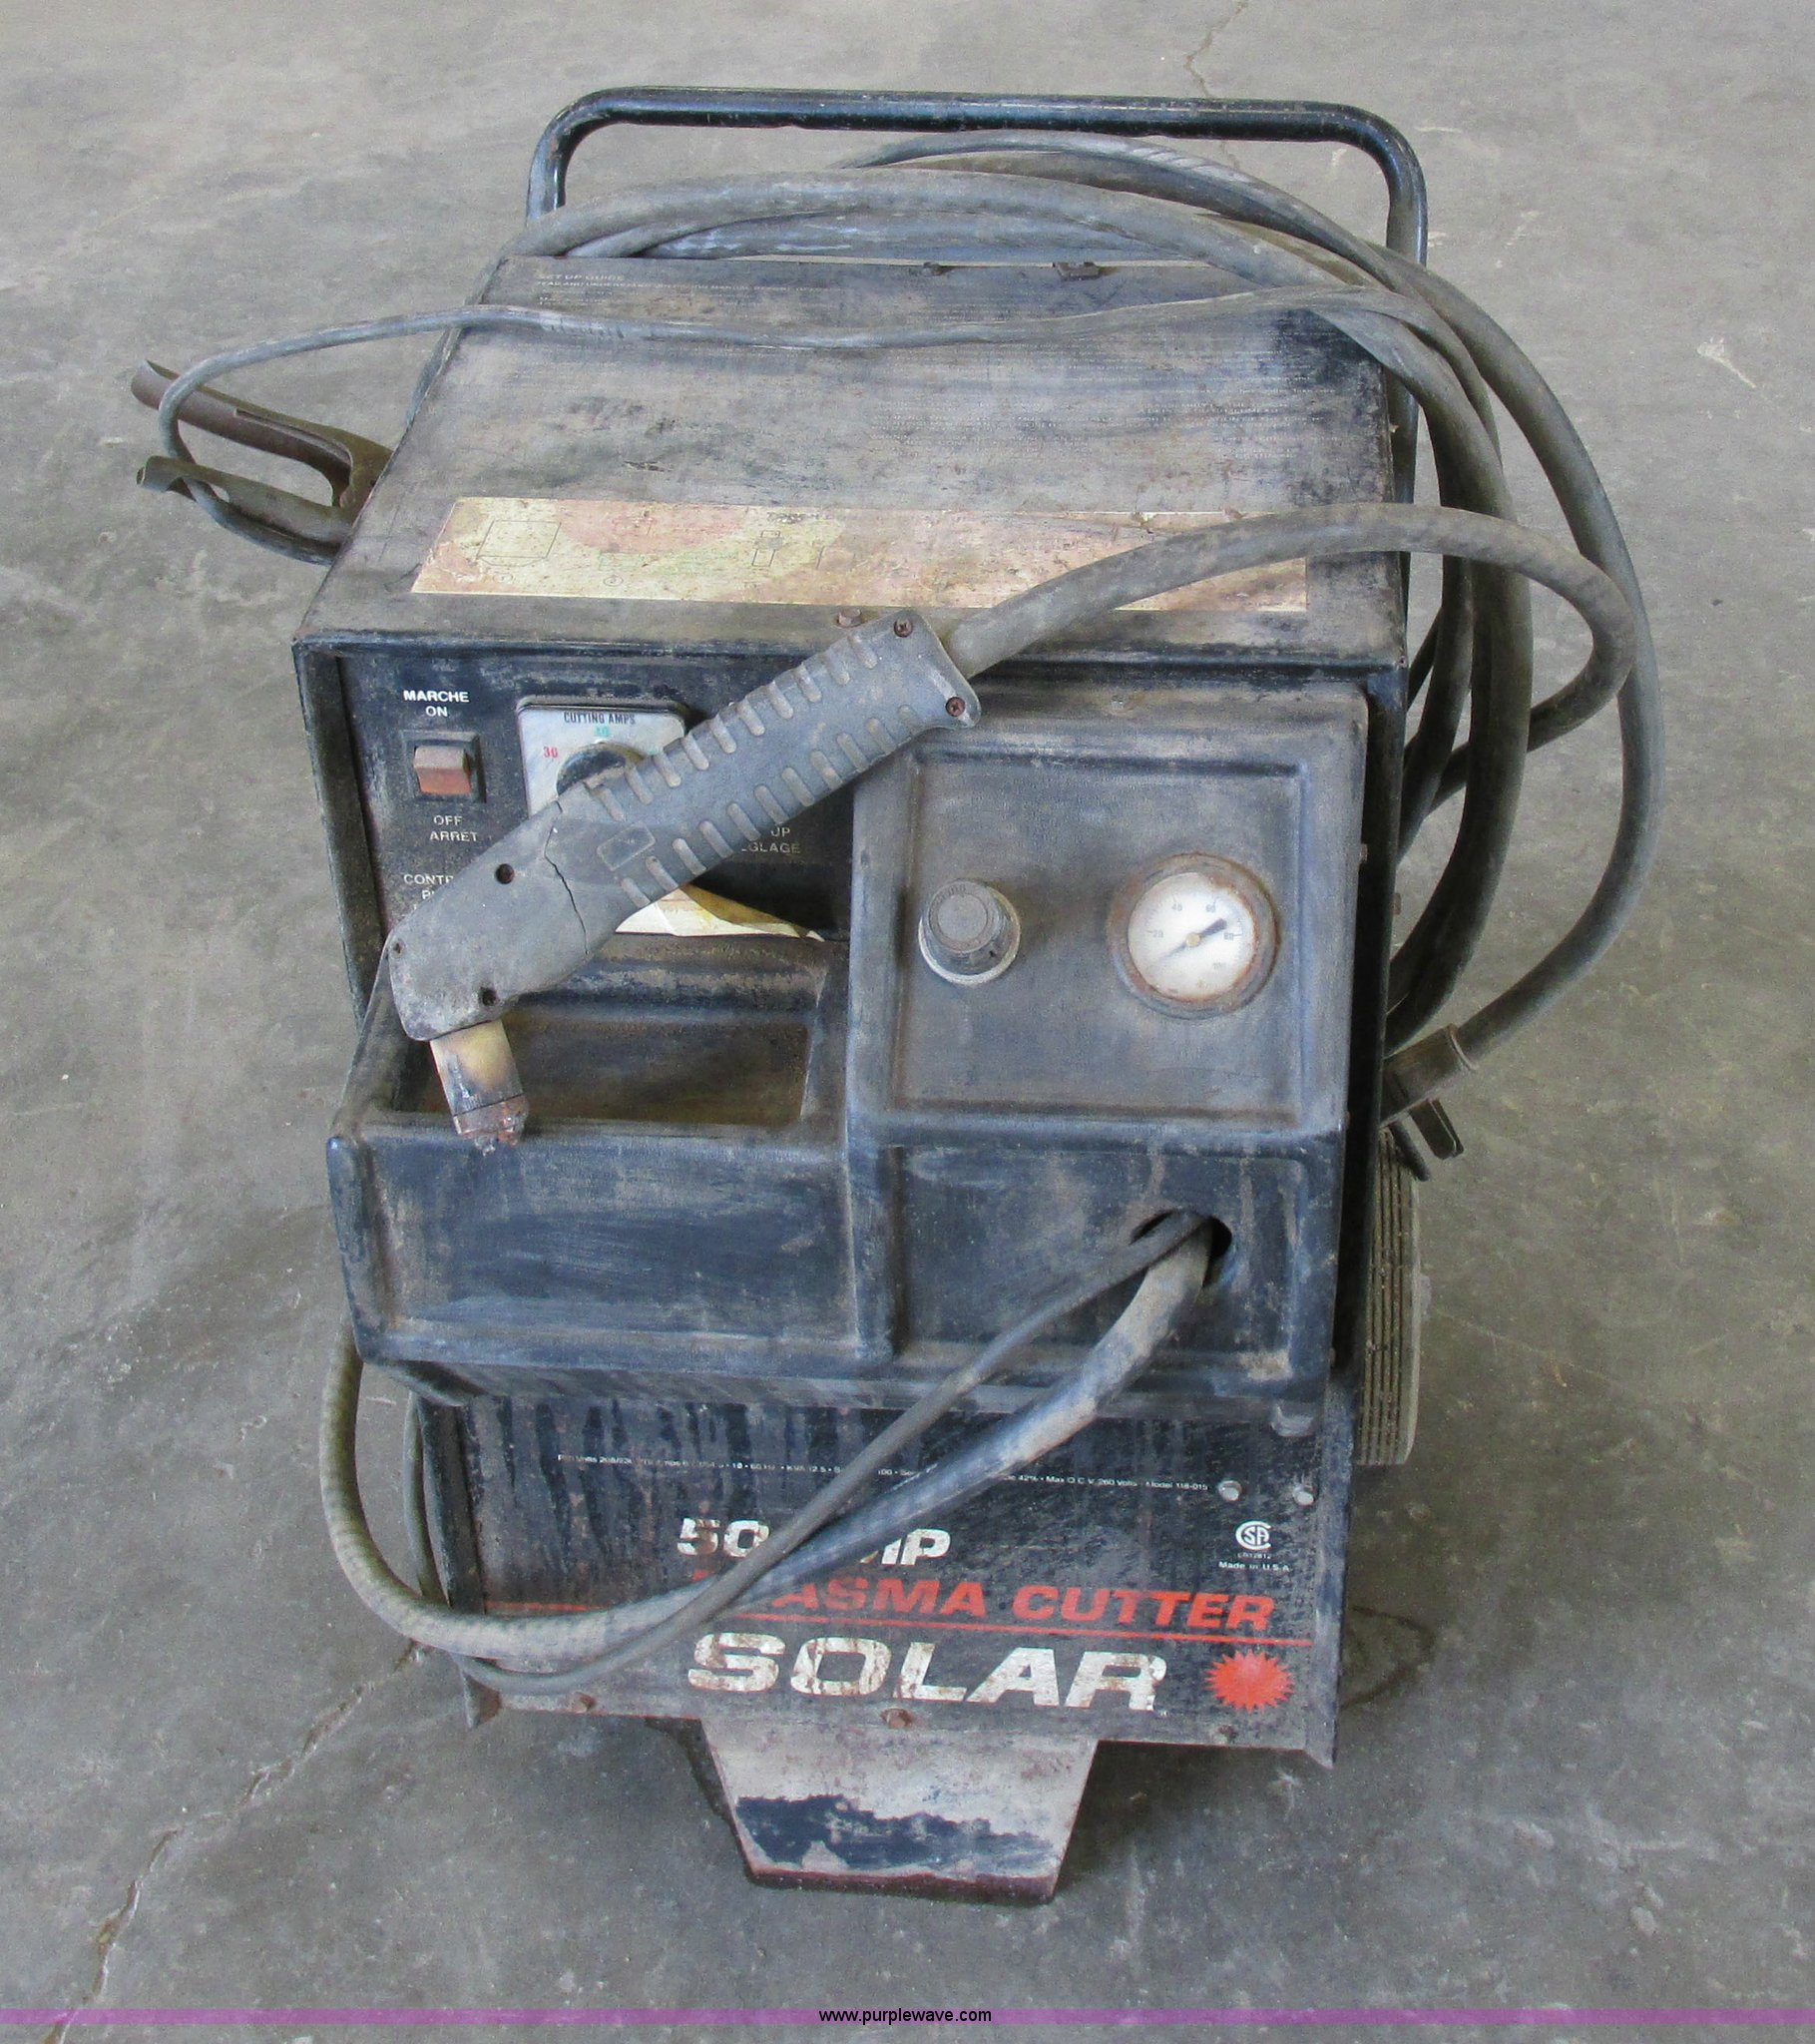 Solar 50 amp plasma cutter | Item AW9699 | SOLD! May 20 Vehi...